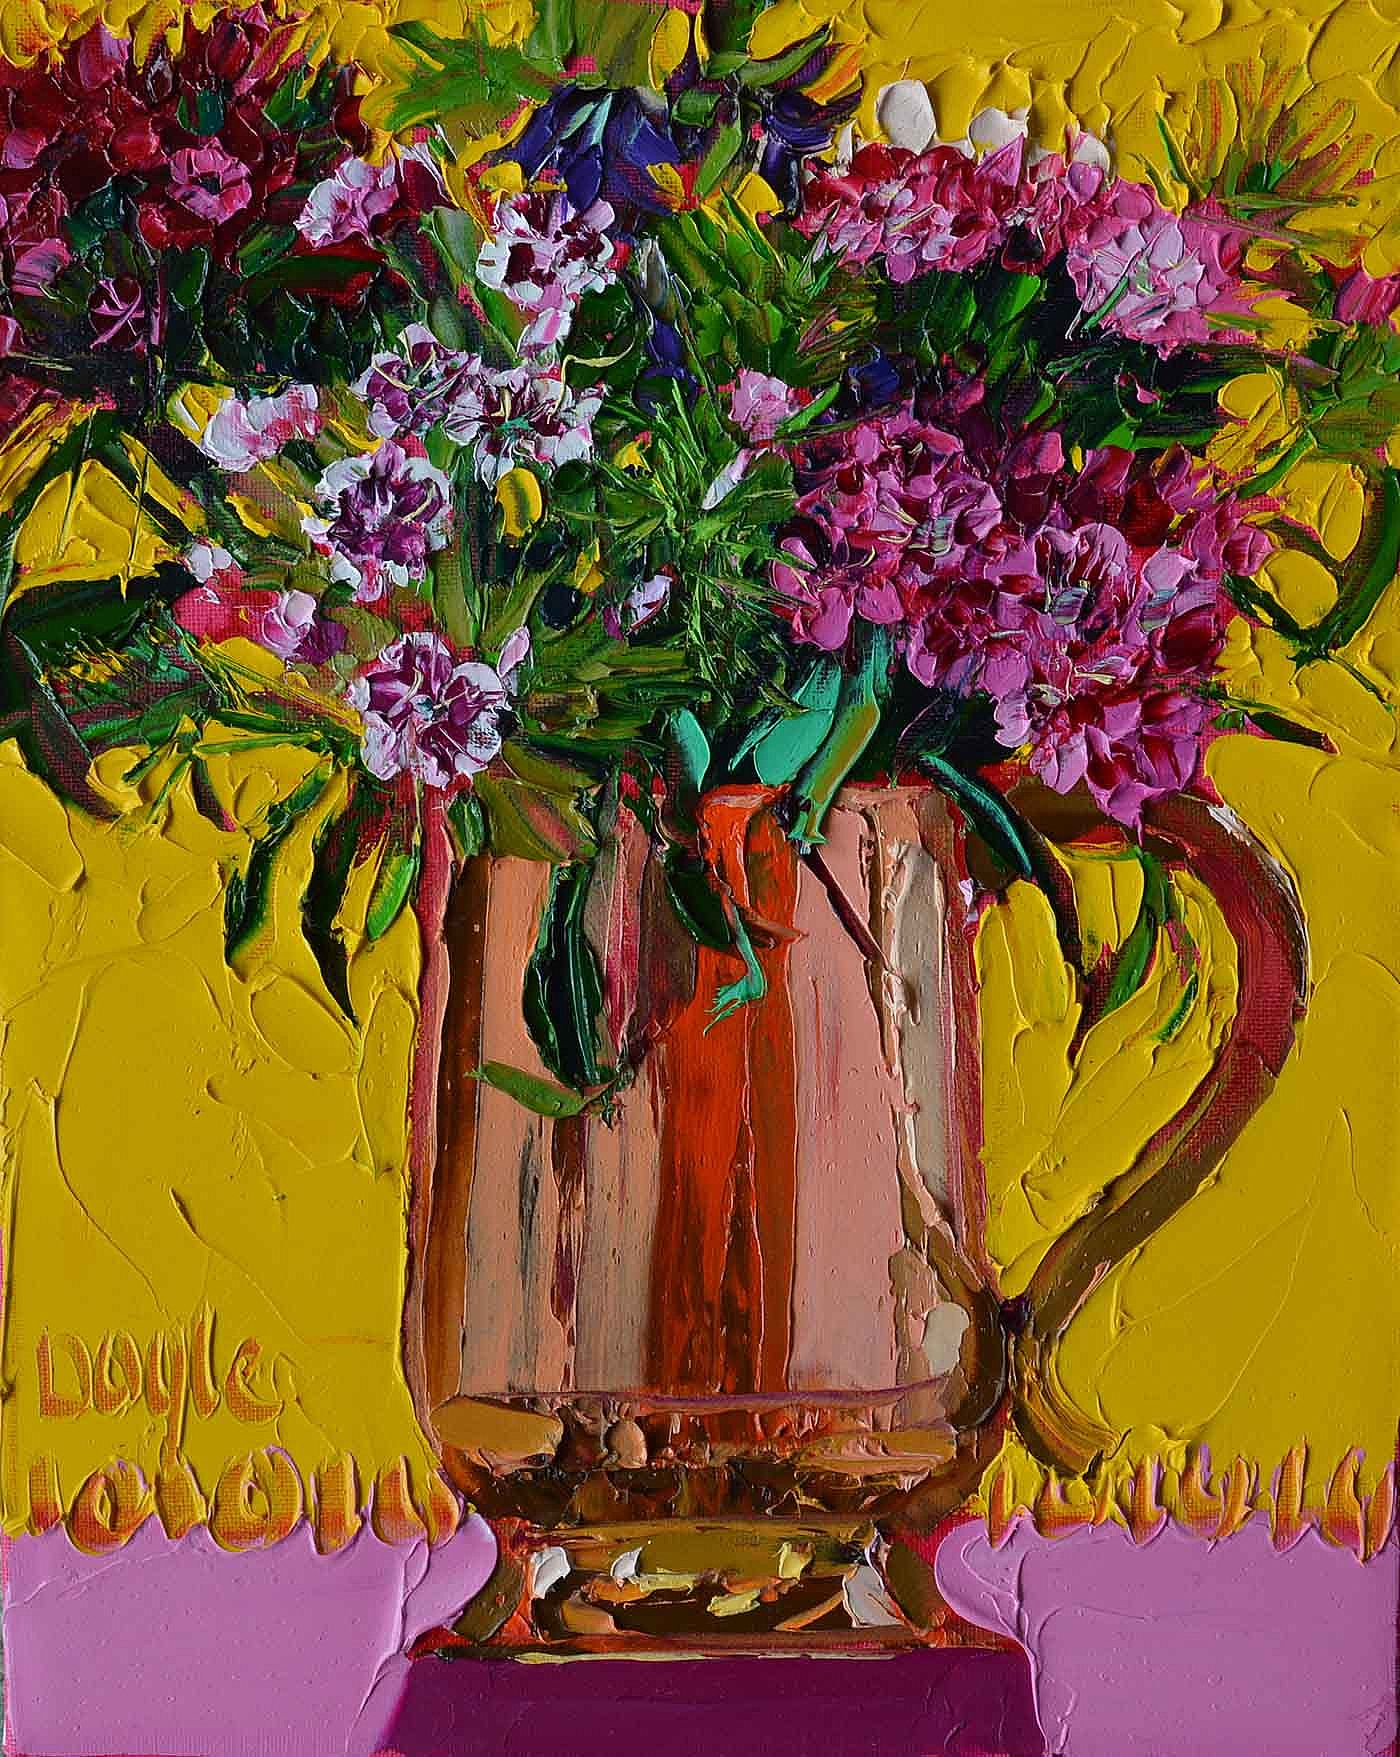 Lucy Doyle - Pots and Posies 3